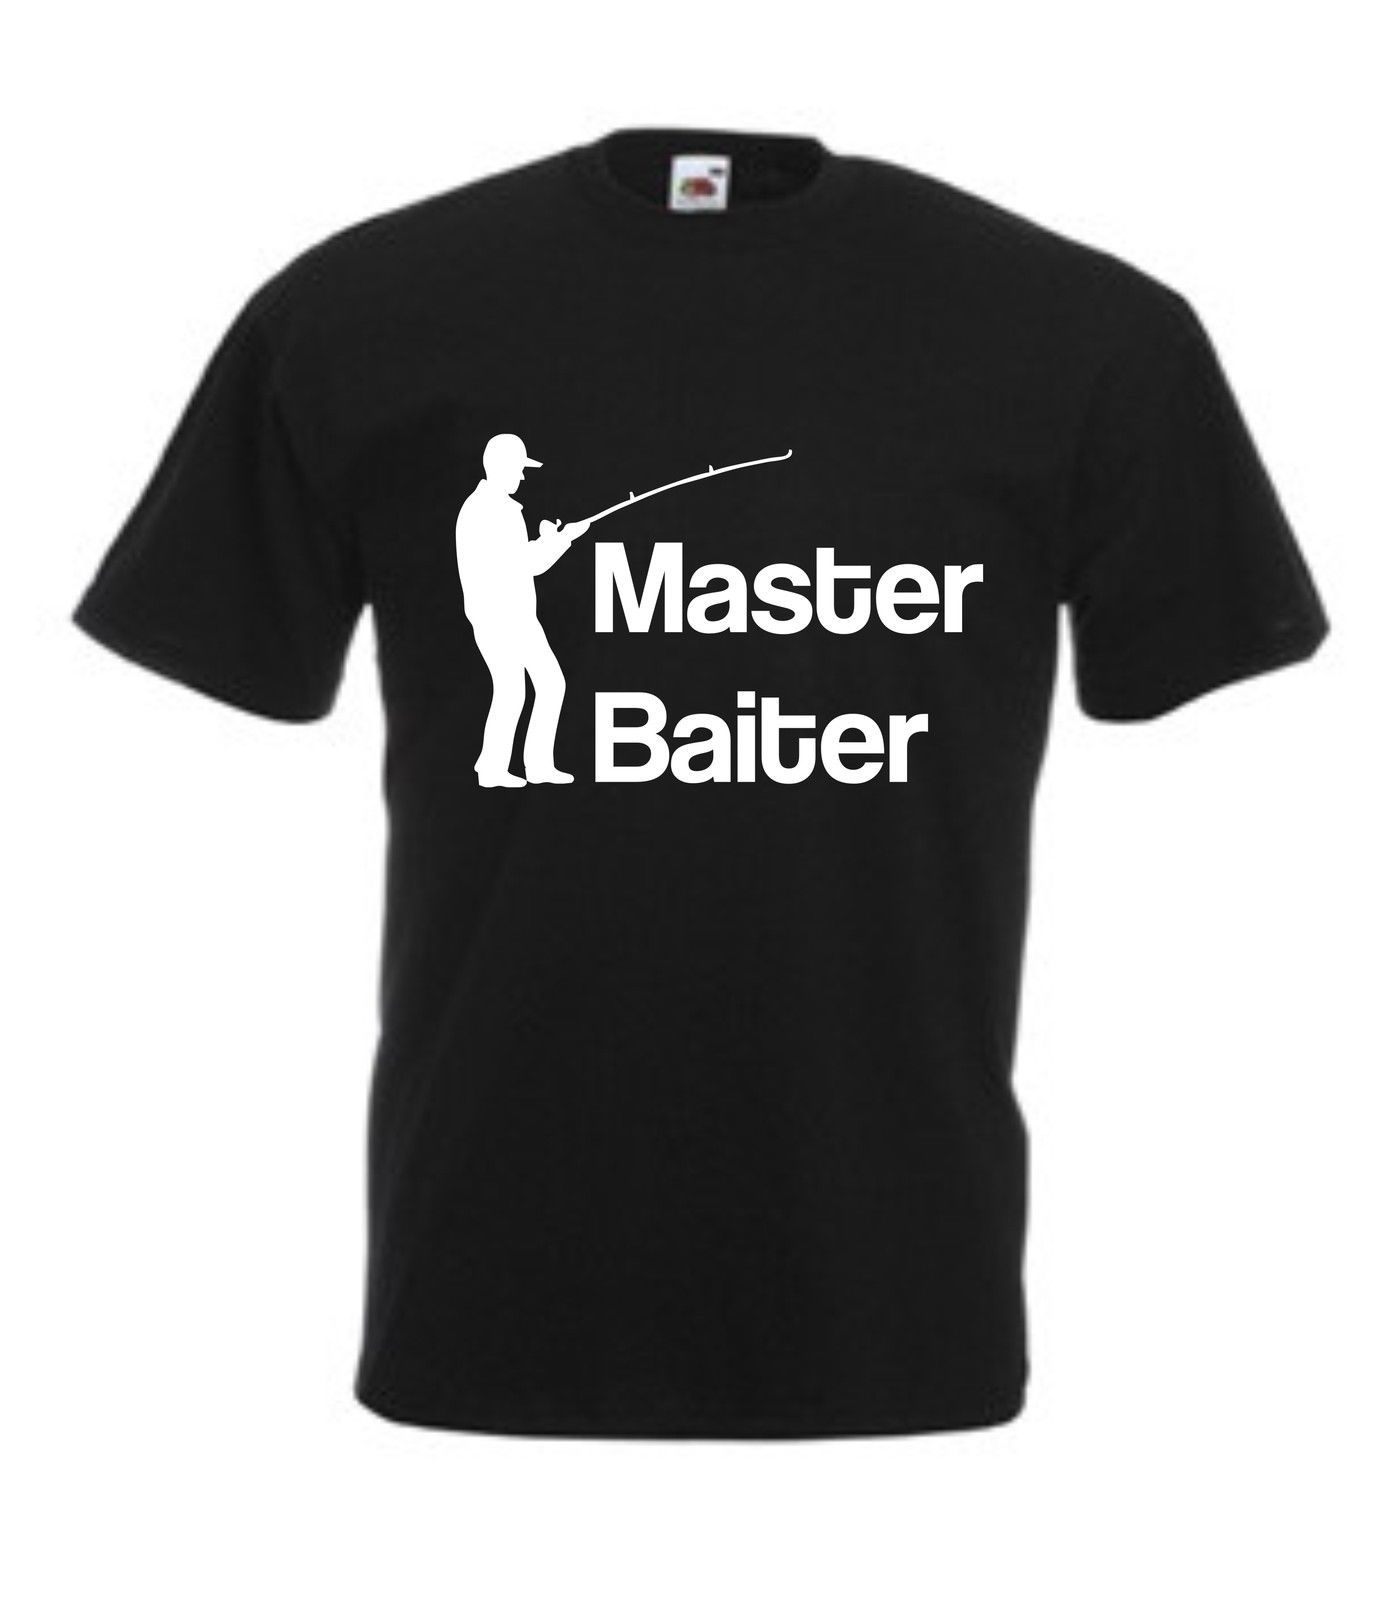 Master baiter t shirt funny rude fishing black tee for Funny fishing t shirts